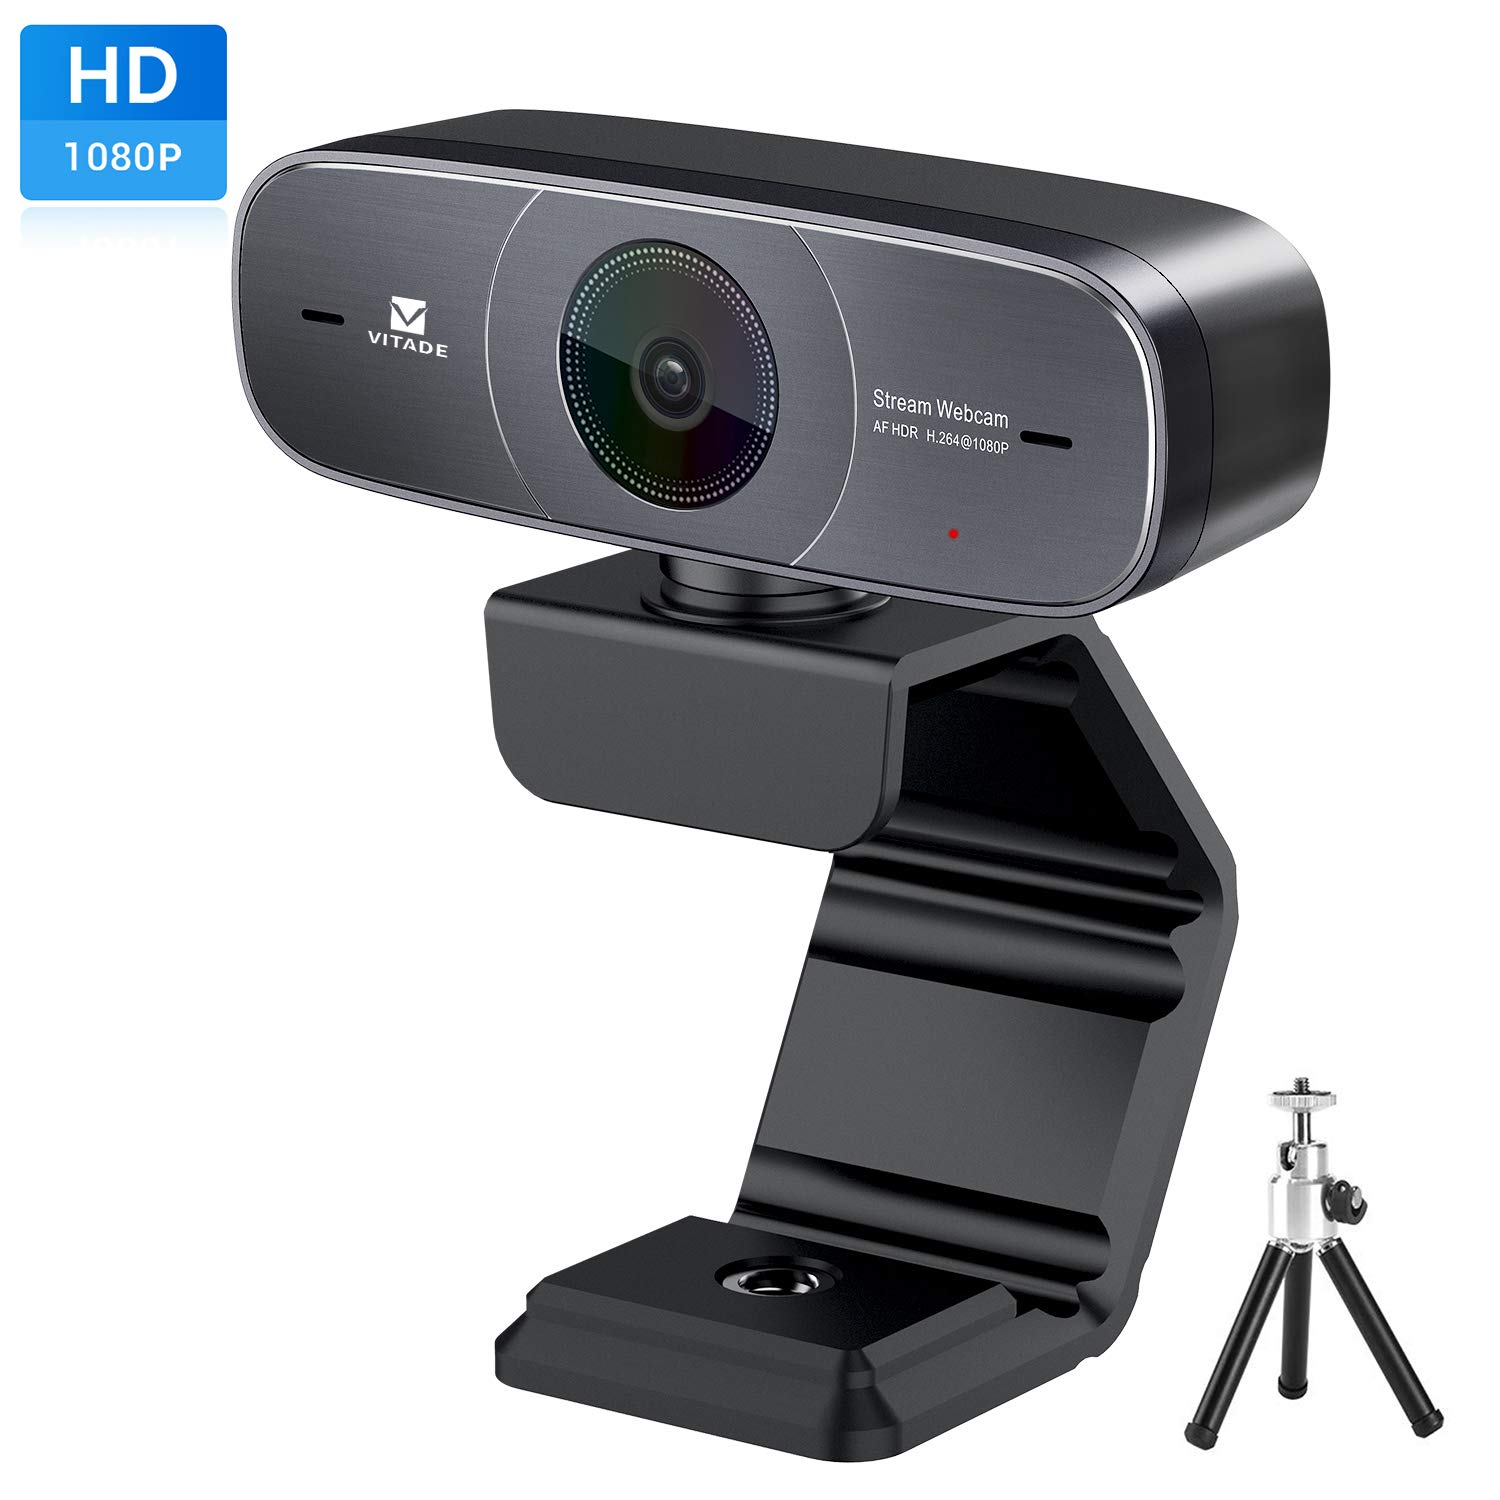 Mac Webcam, HD 1080P Webcam with Microphone for Streaming, 925A HDR USB Computer Web Camera Pro Video Cam for Mac PC Windows Skype Obs Twitch YouTube Xsplit Xbox One -Tripod included by Vitade